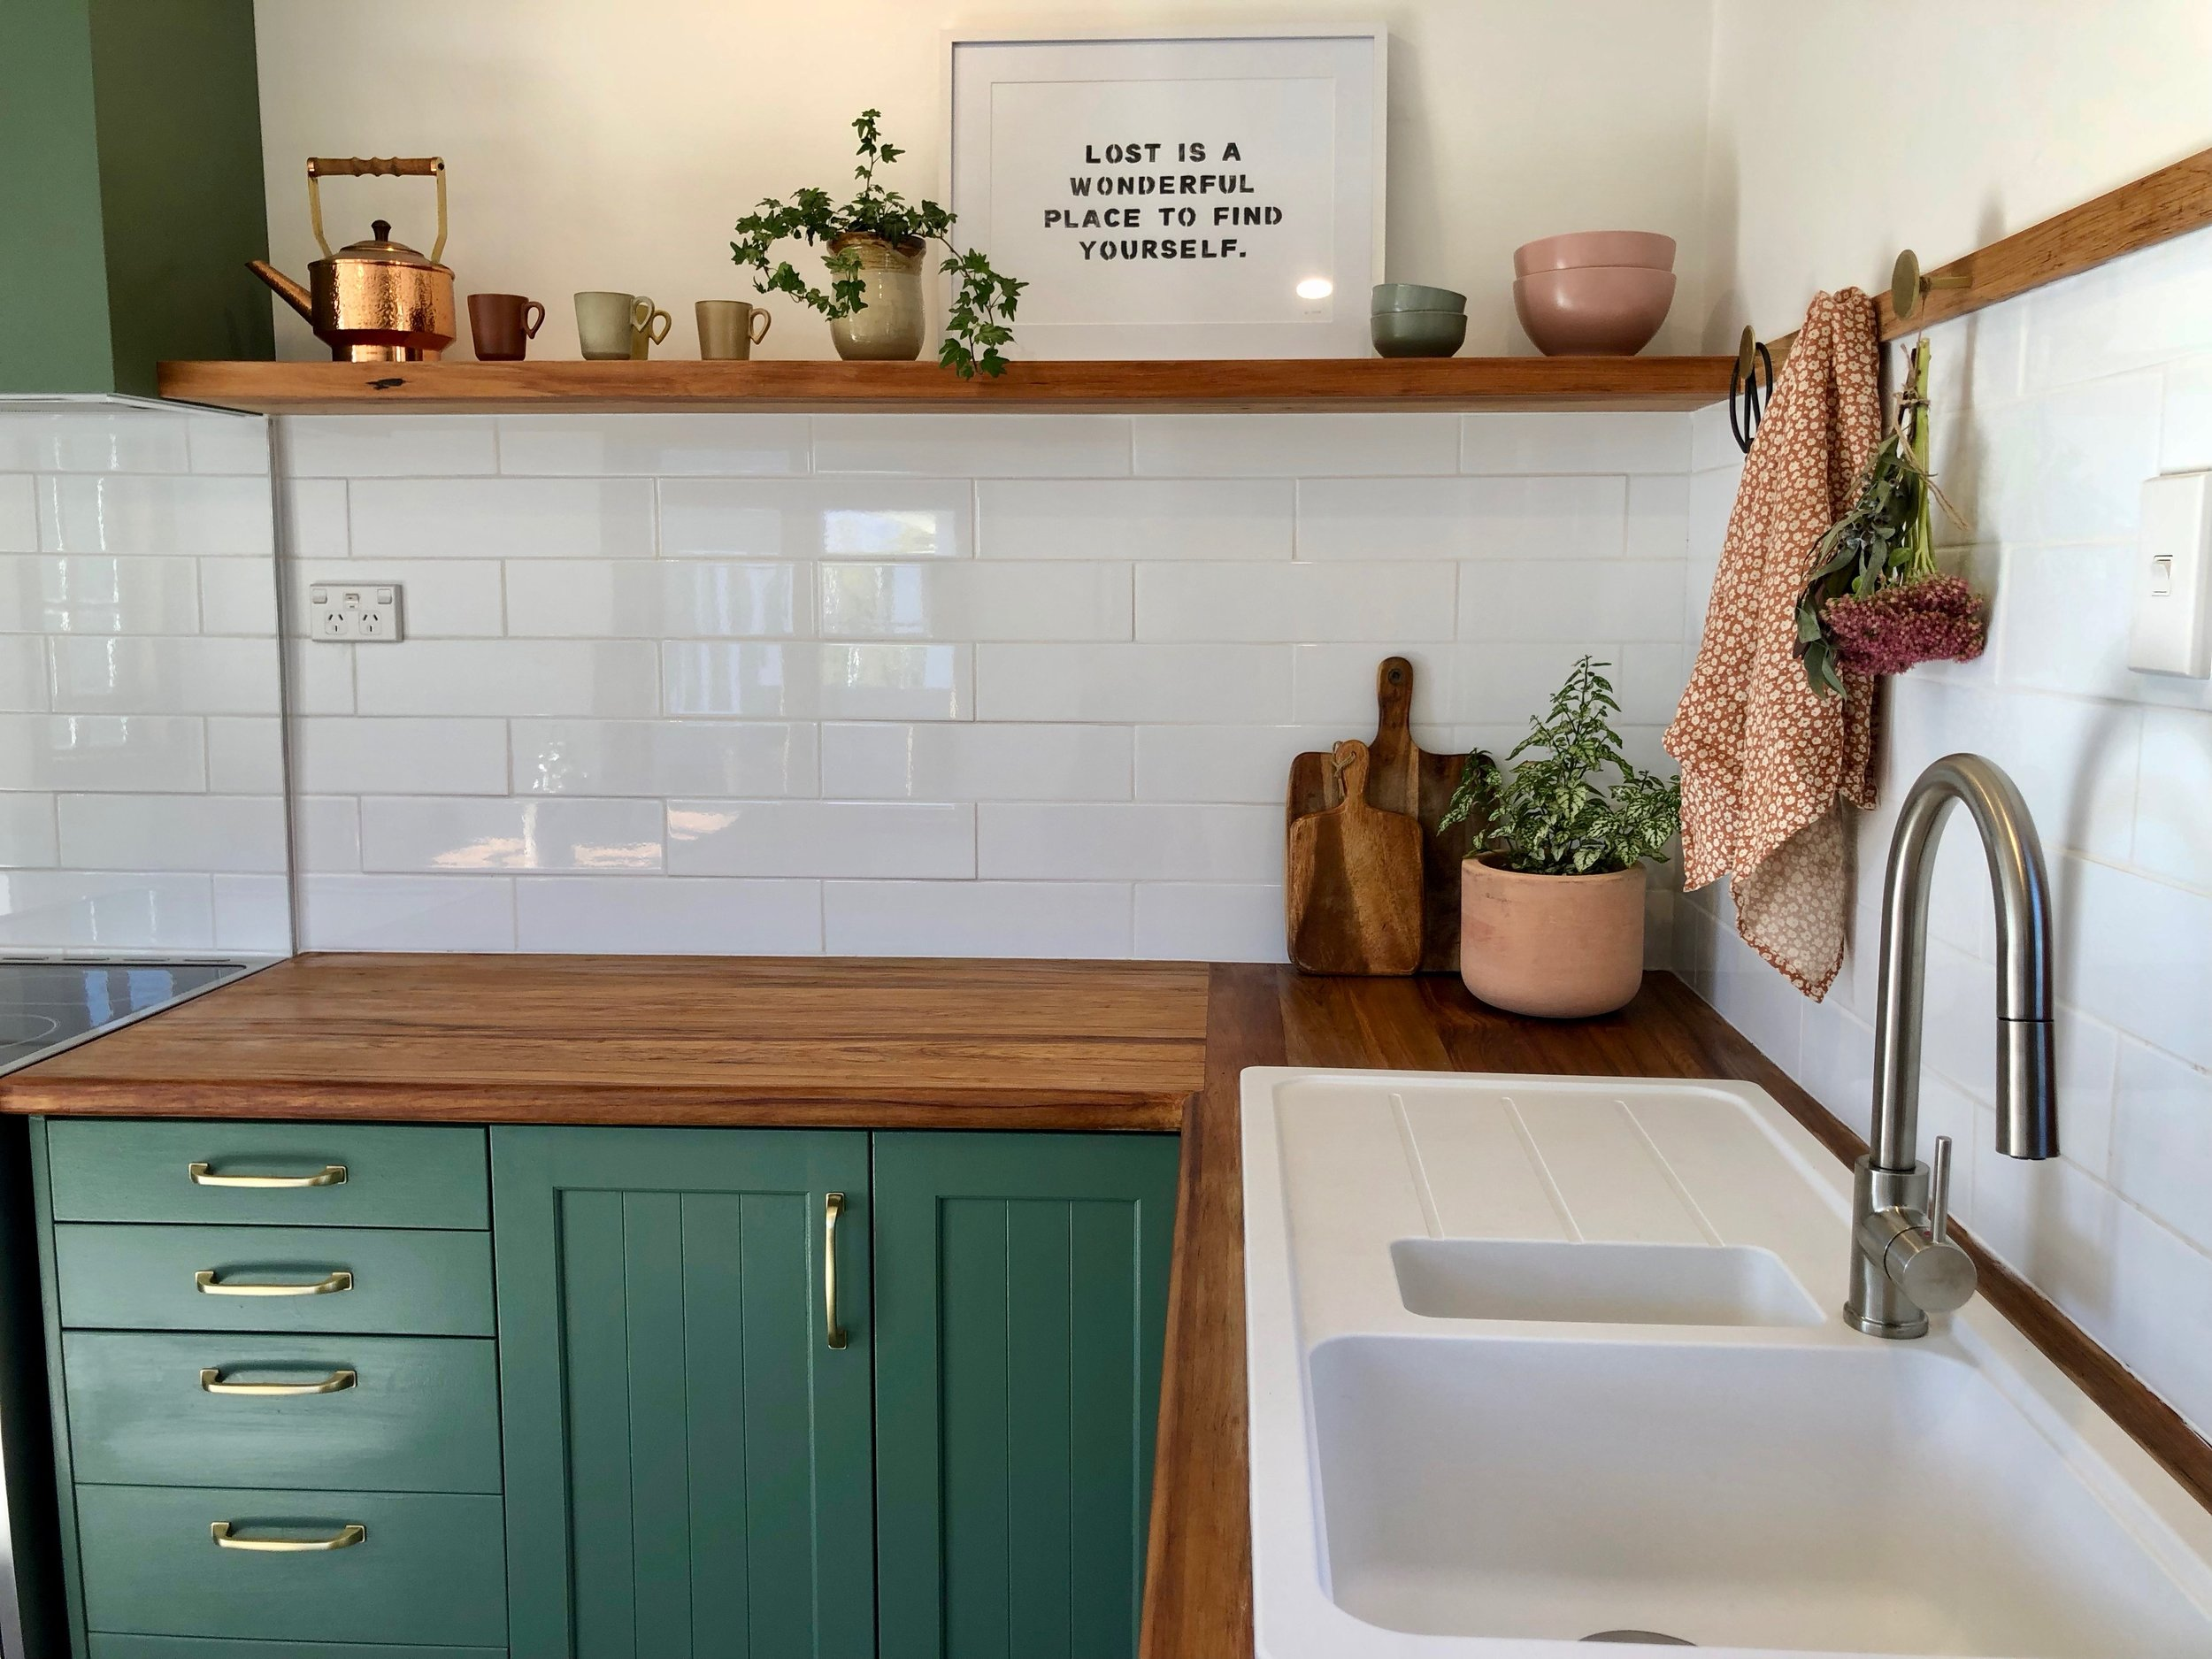 Pearson and Projects Kitchen Reveal Farmhouse Green Timber Bench Shelf Breakfast Table White Sink Cottage - 13.jpg